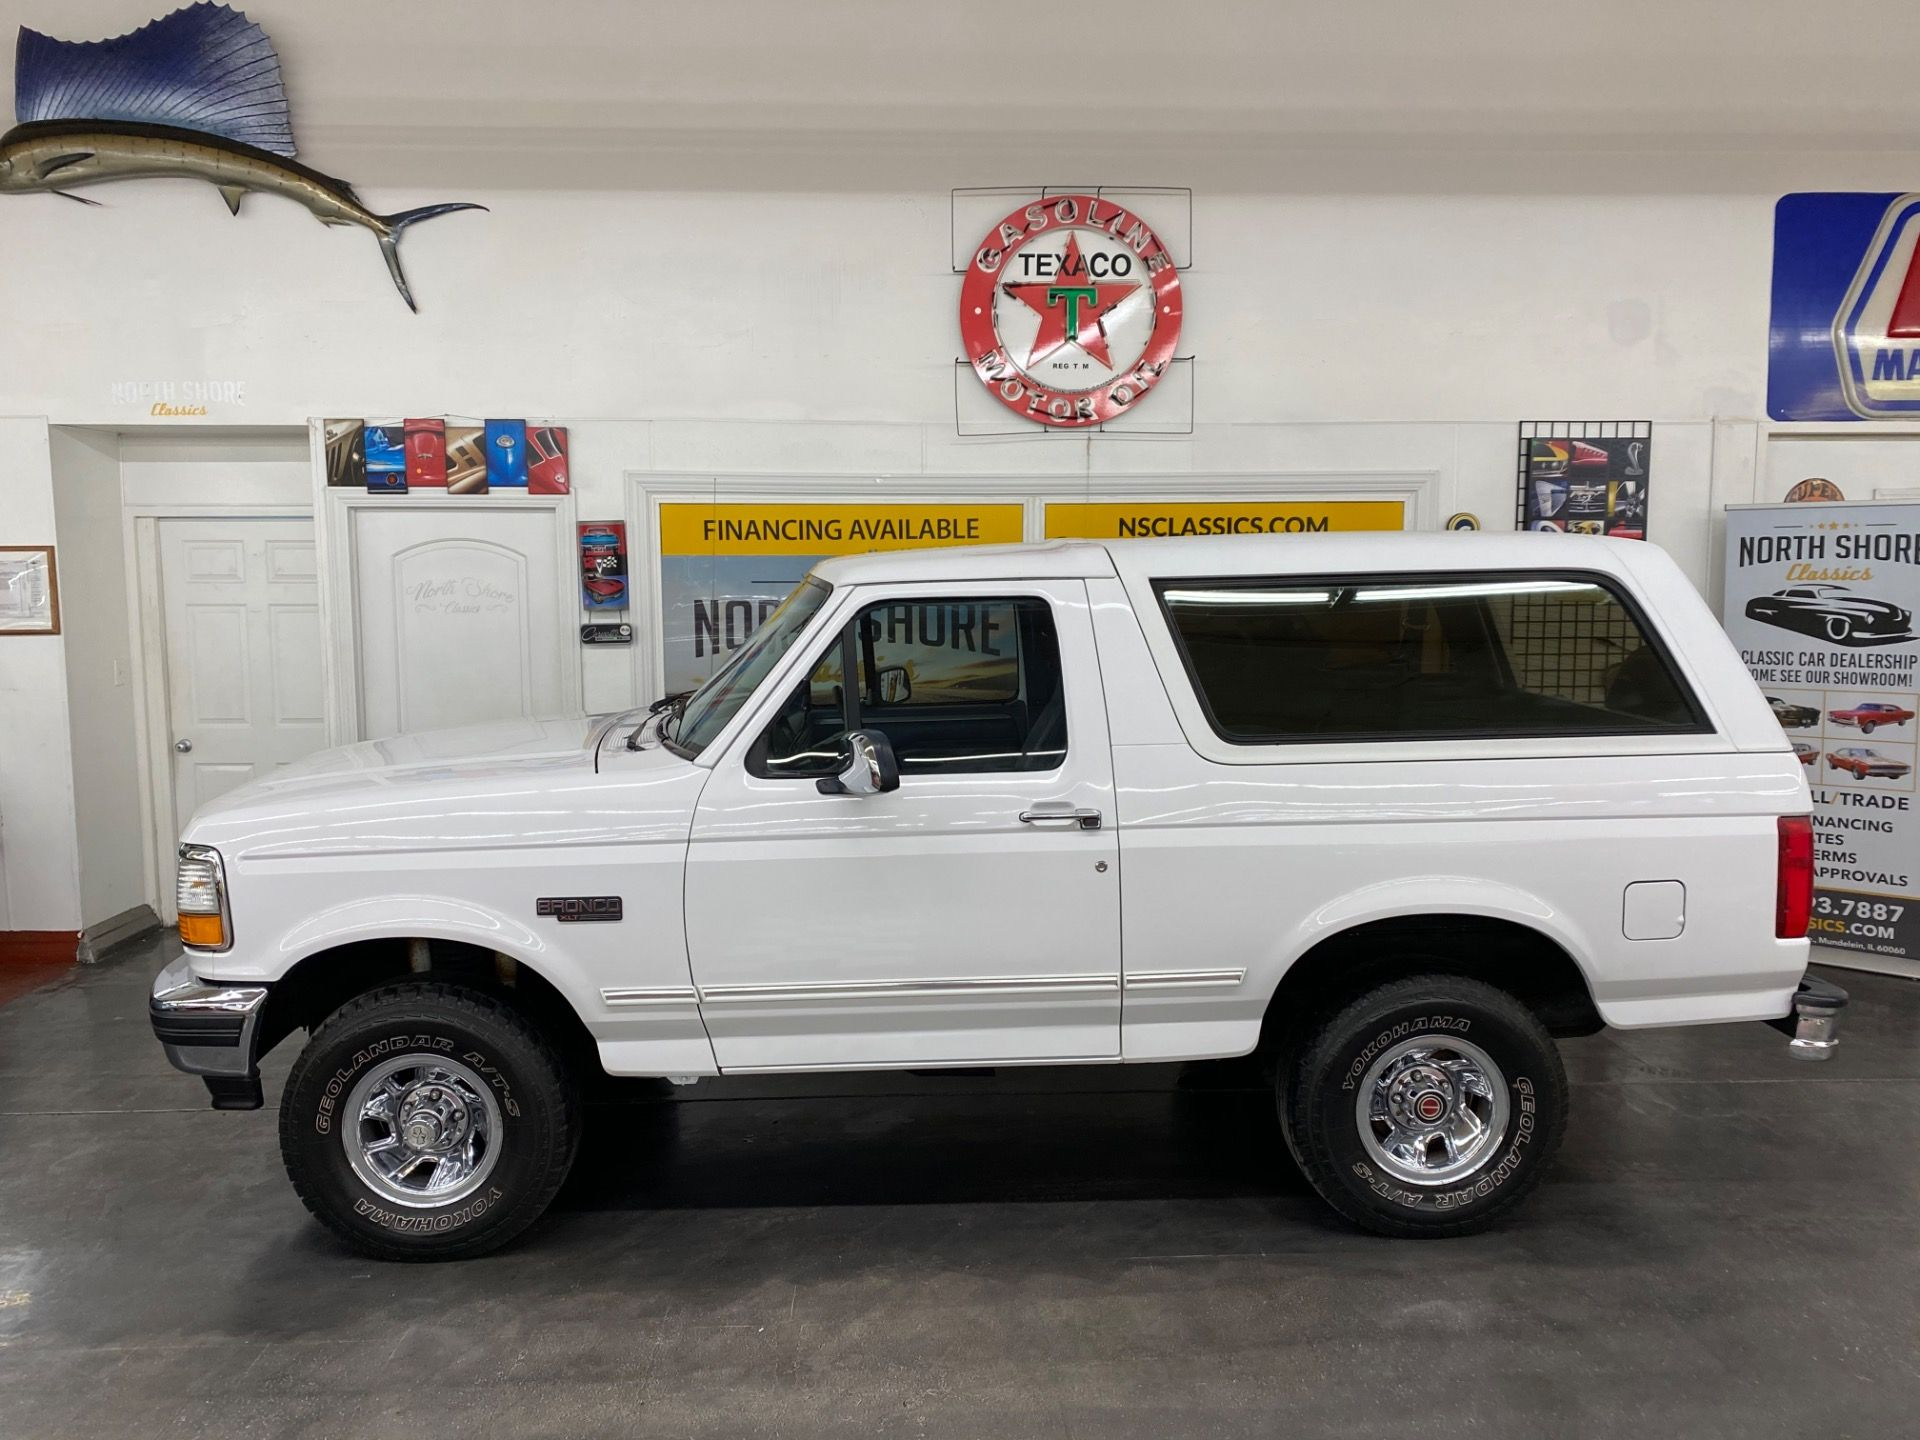 1994 Ford Bronco Xlt 4x4 5 8l Engine 2 Owner Vehicle See